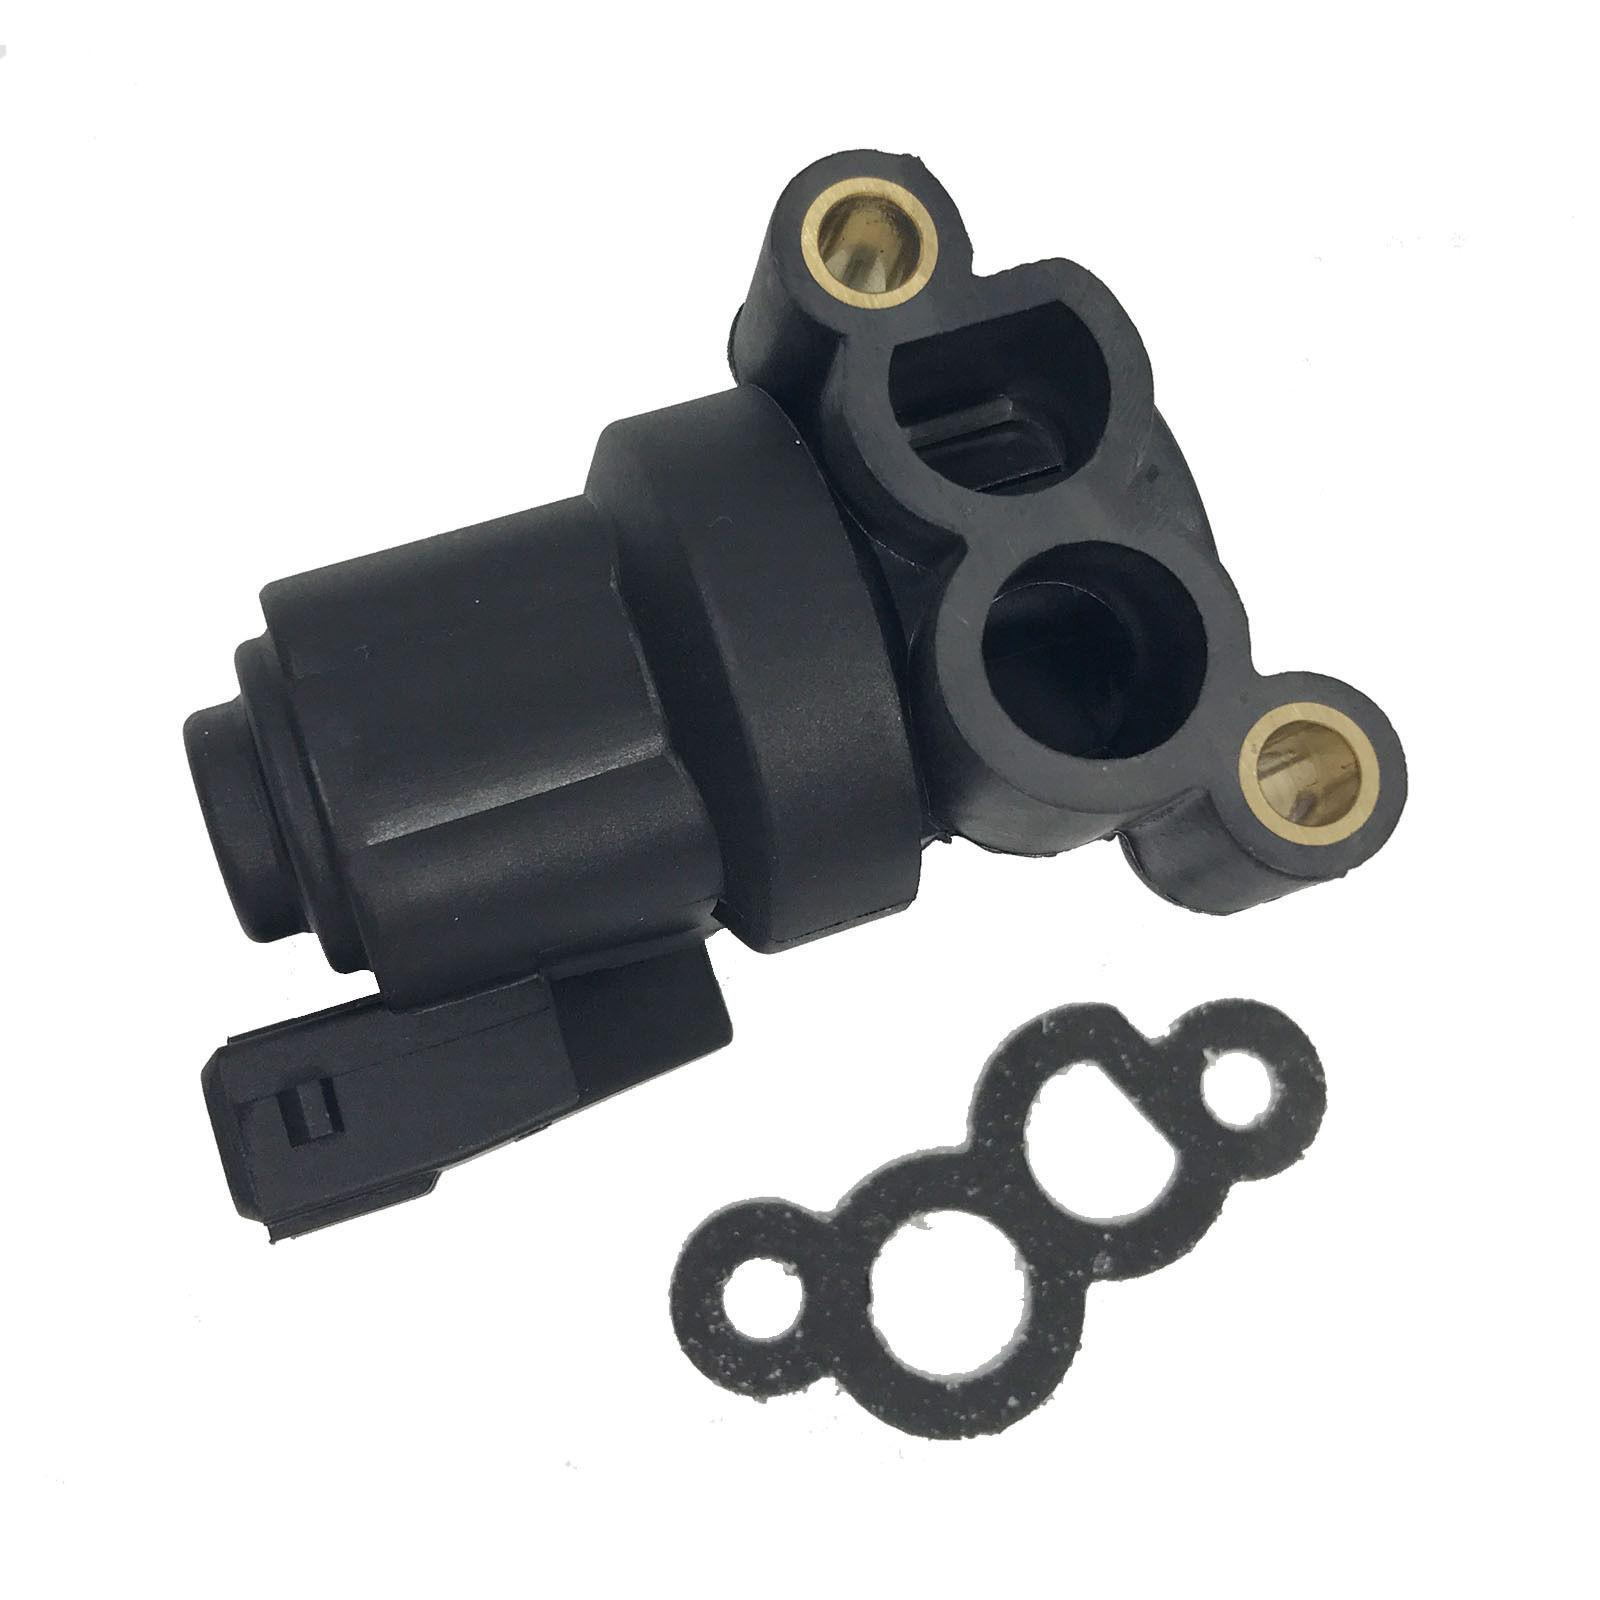 Idle Air Control Valve For Hyundai Sonata Tiburon Kia: 2019 Idle Air Control Valve IAC FIT Hyundai Accent Elantra